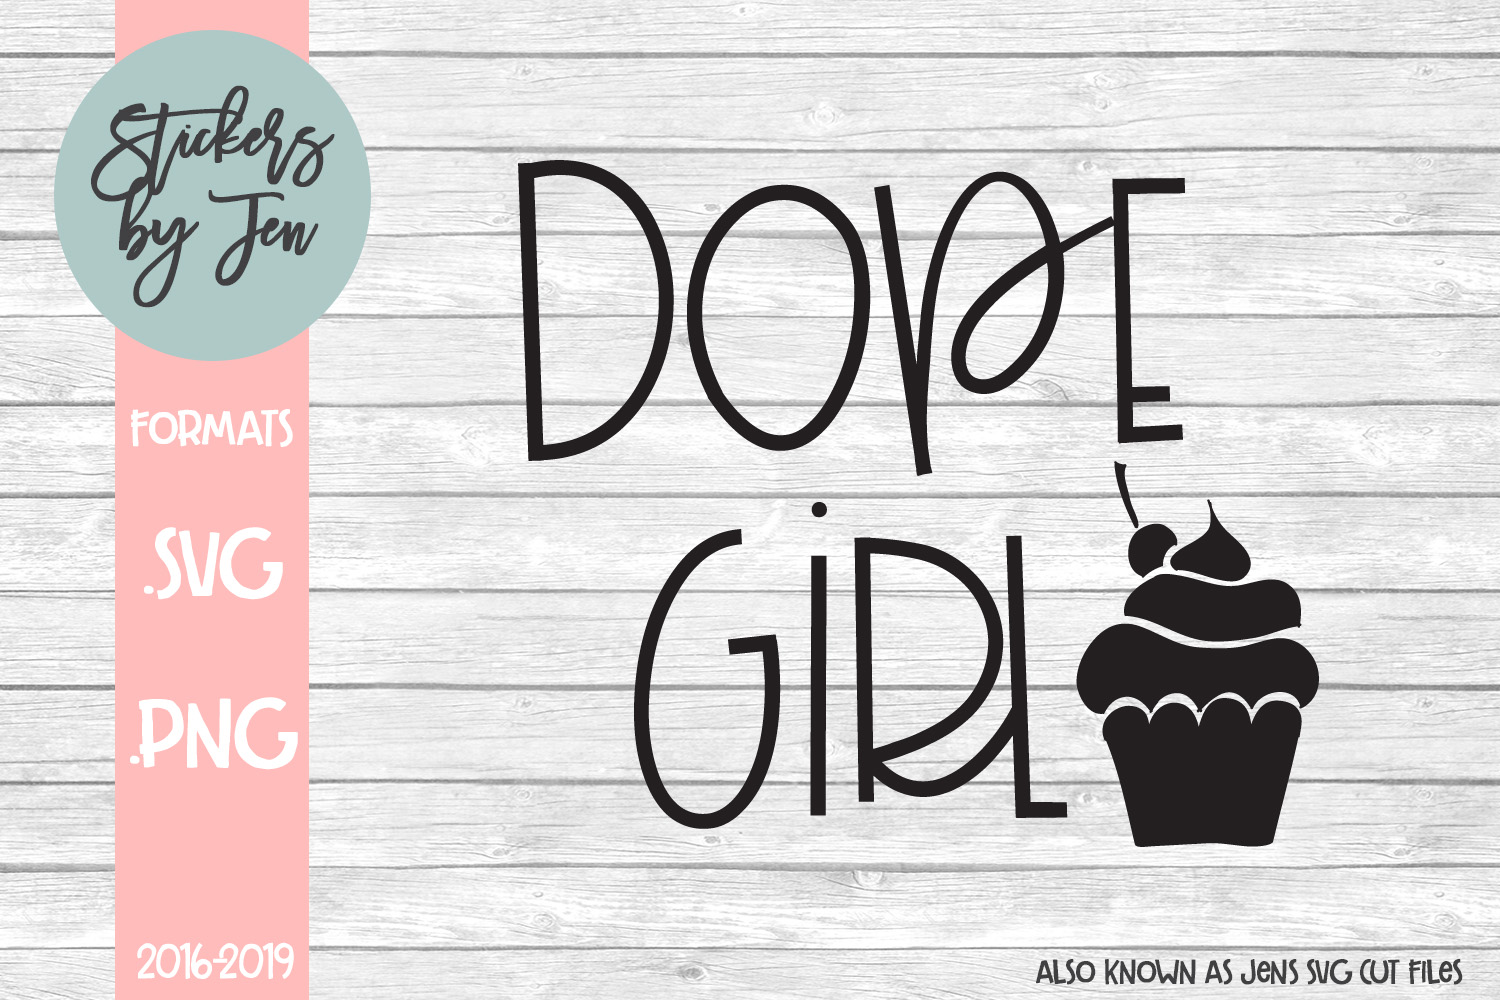 Dope Girl Svg Graphic By Stickers By Jennifer Creative Fabrica